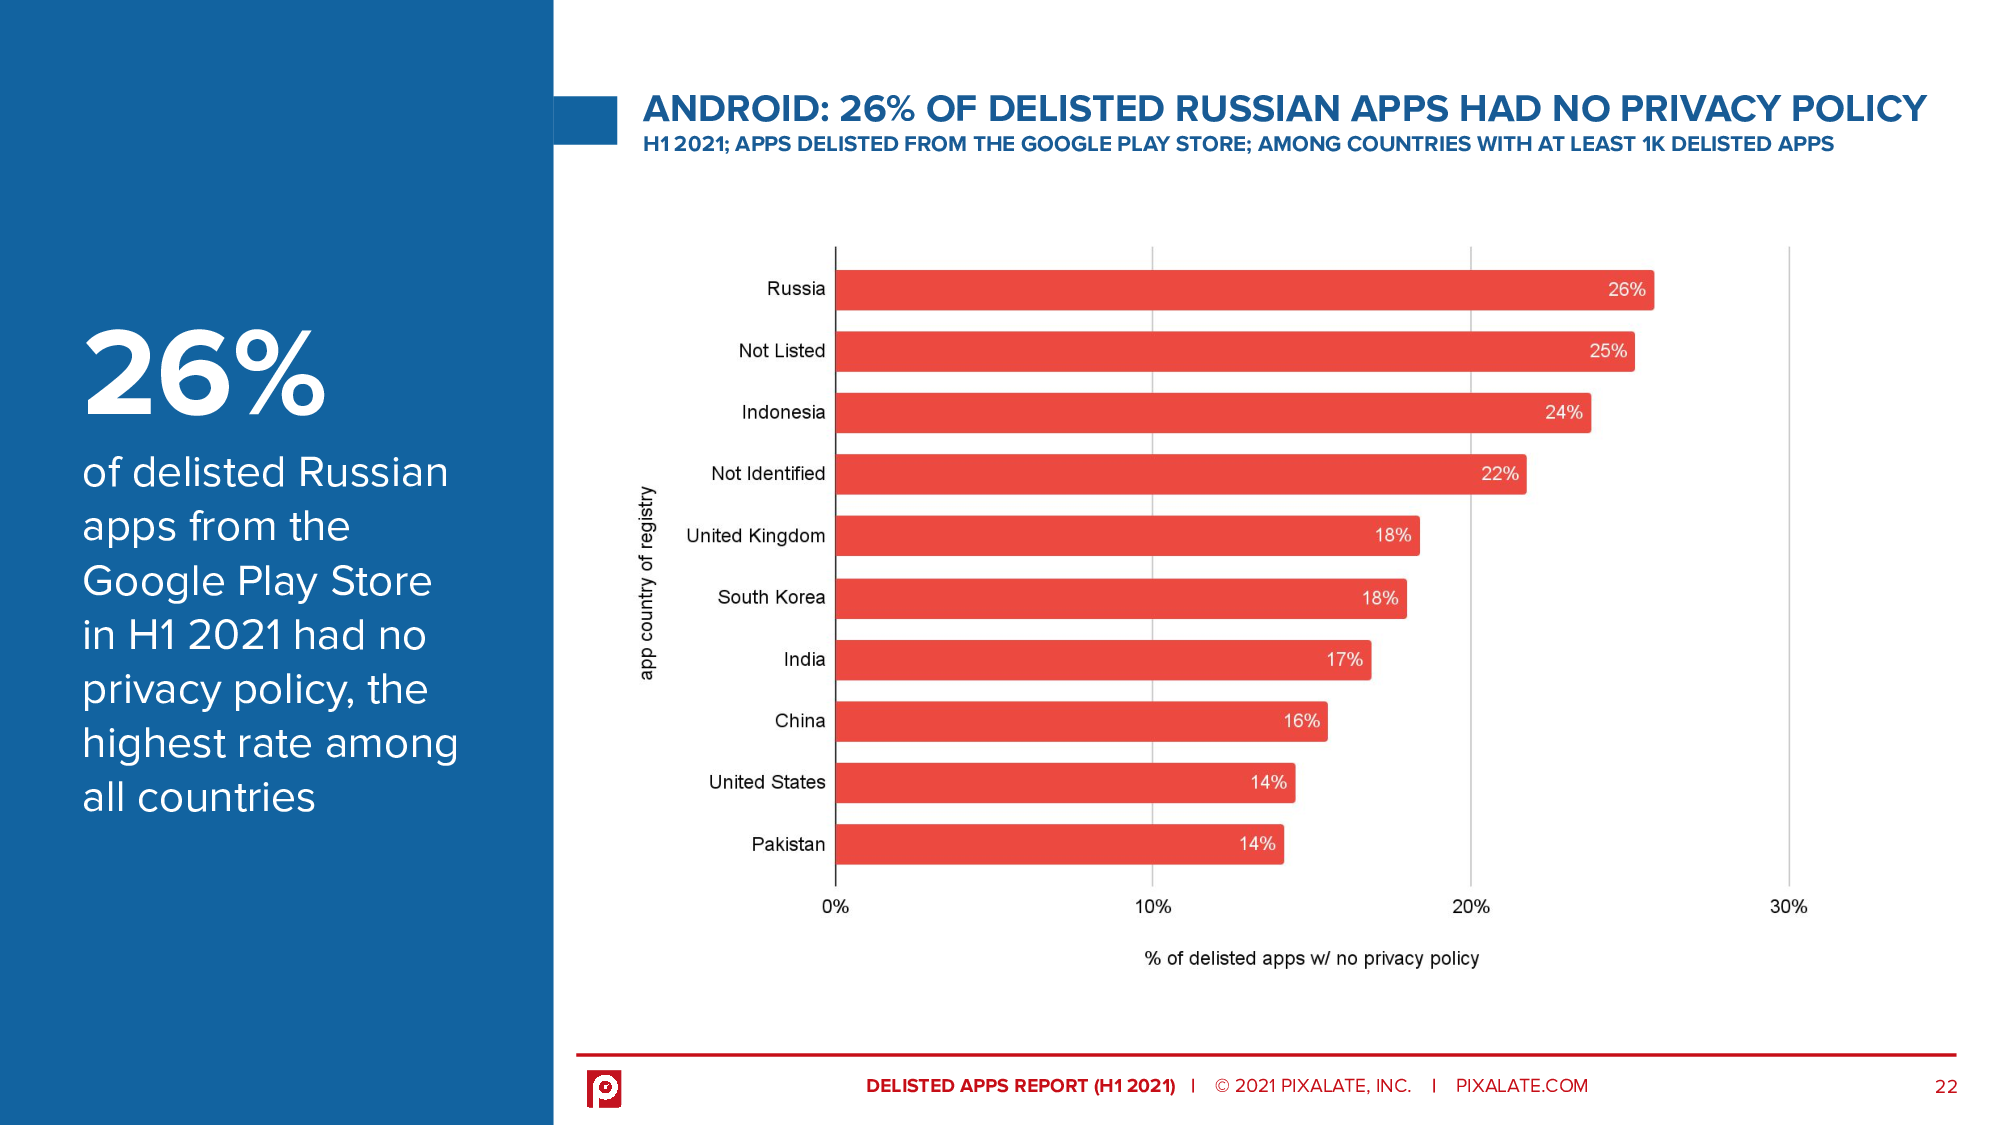 26% of delisted Russian apps from the Google Play Store in H1 2021 had no privacy policy, the highest rate among all countries